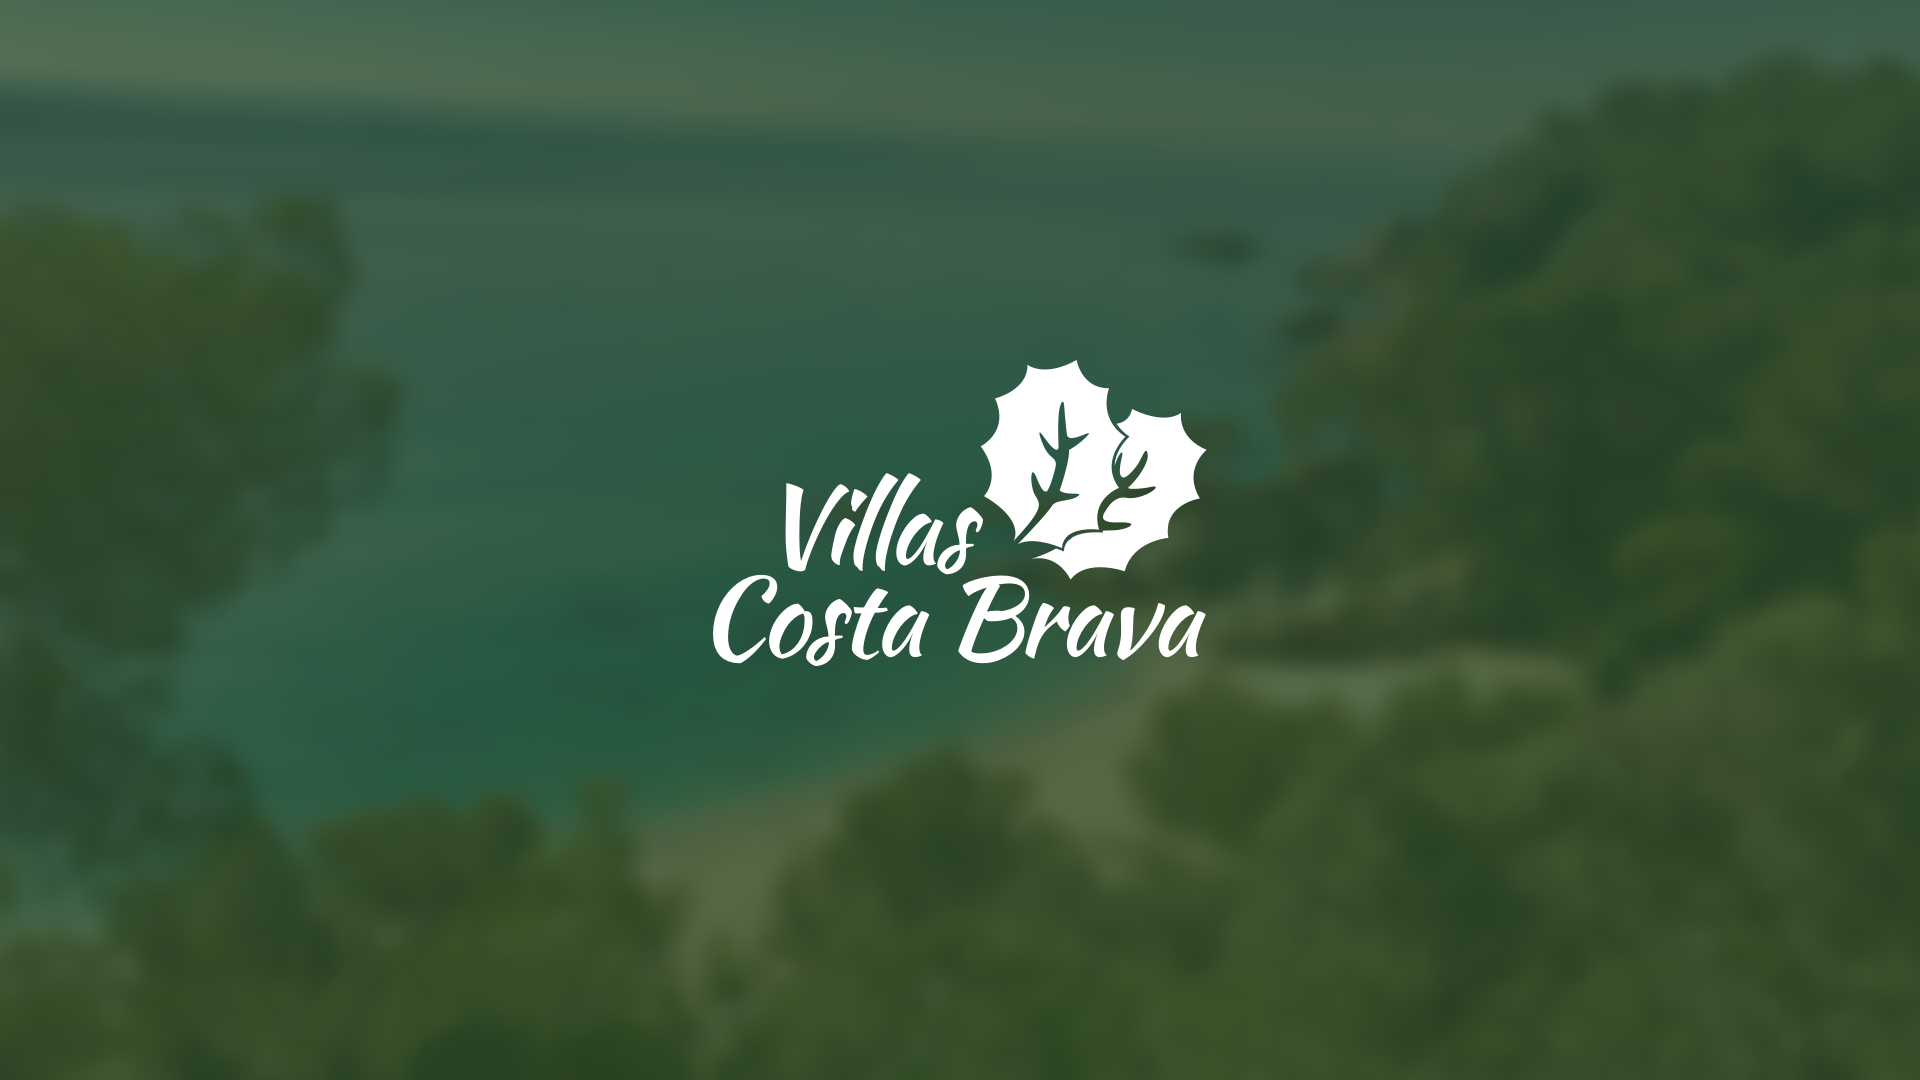 Logotip Villas Costa Brava_02